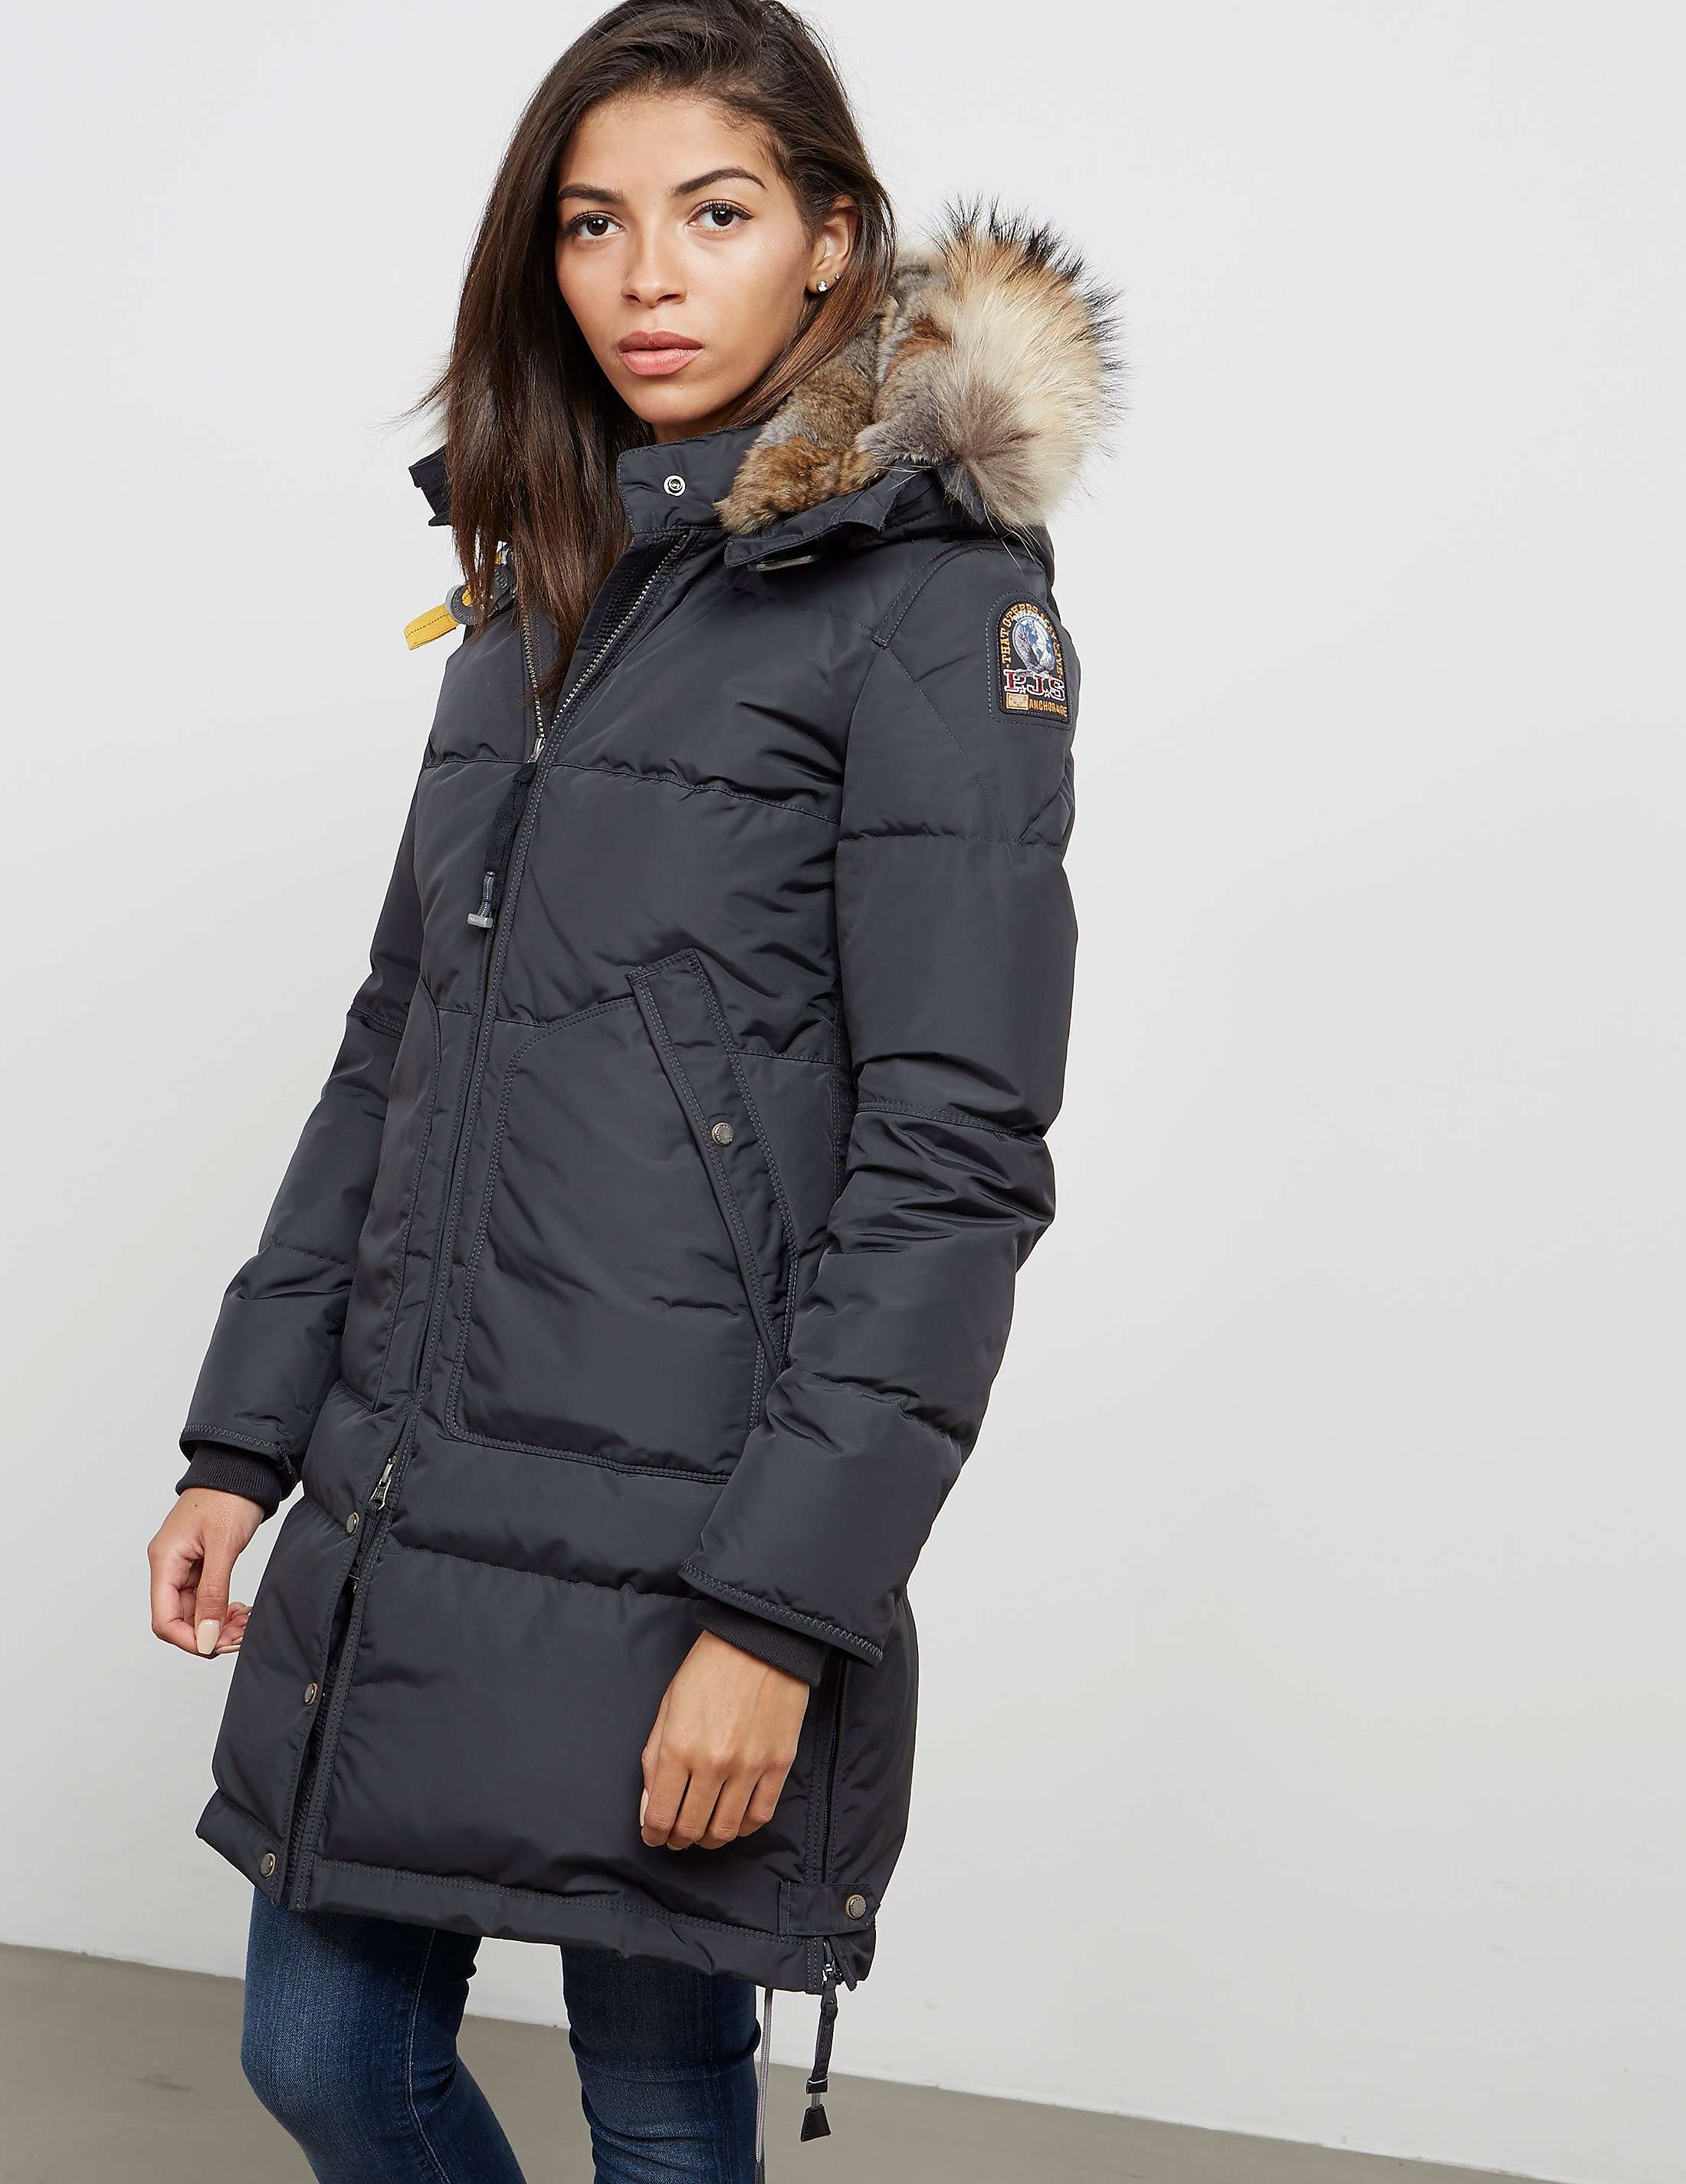 Buy Jacket Parajumpers Buy Parajumpers Jacket Buy rwPXqrSWaH